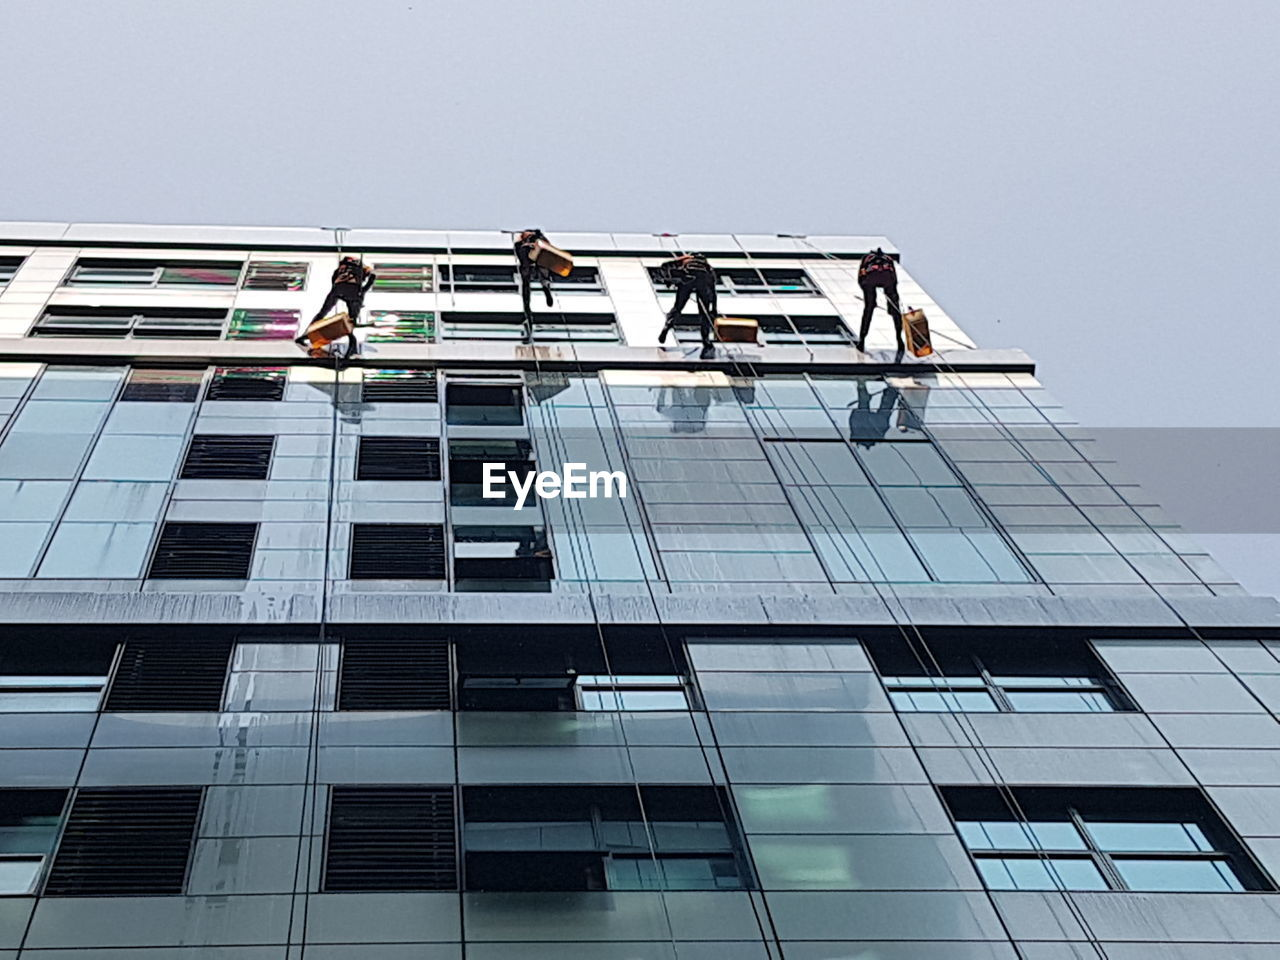 built structure, architecture, building exterior, building, low angle view, city, glass - material, sky, occupation, office building exterior, working, office, window washer, day, reflection, window, men, modern, people, outdoors, skyscraper, coworker